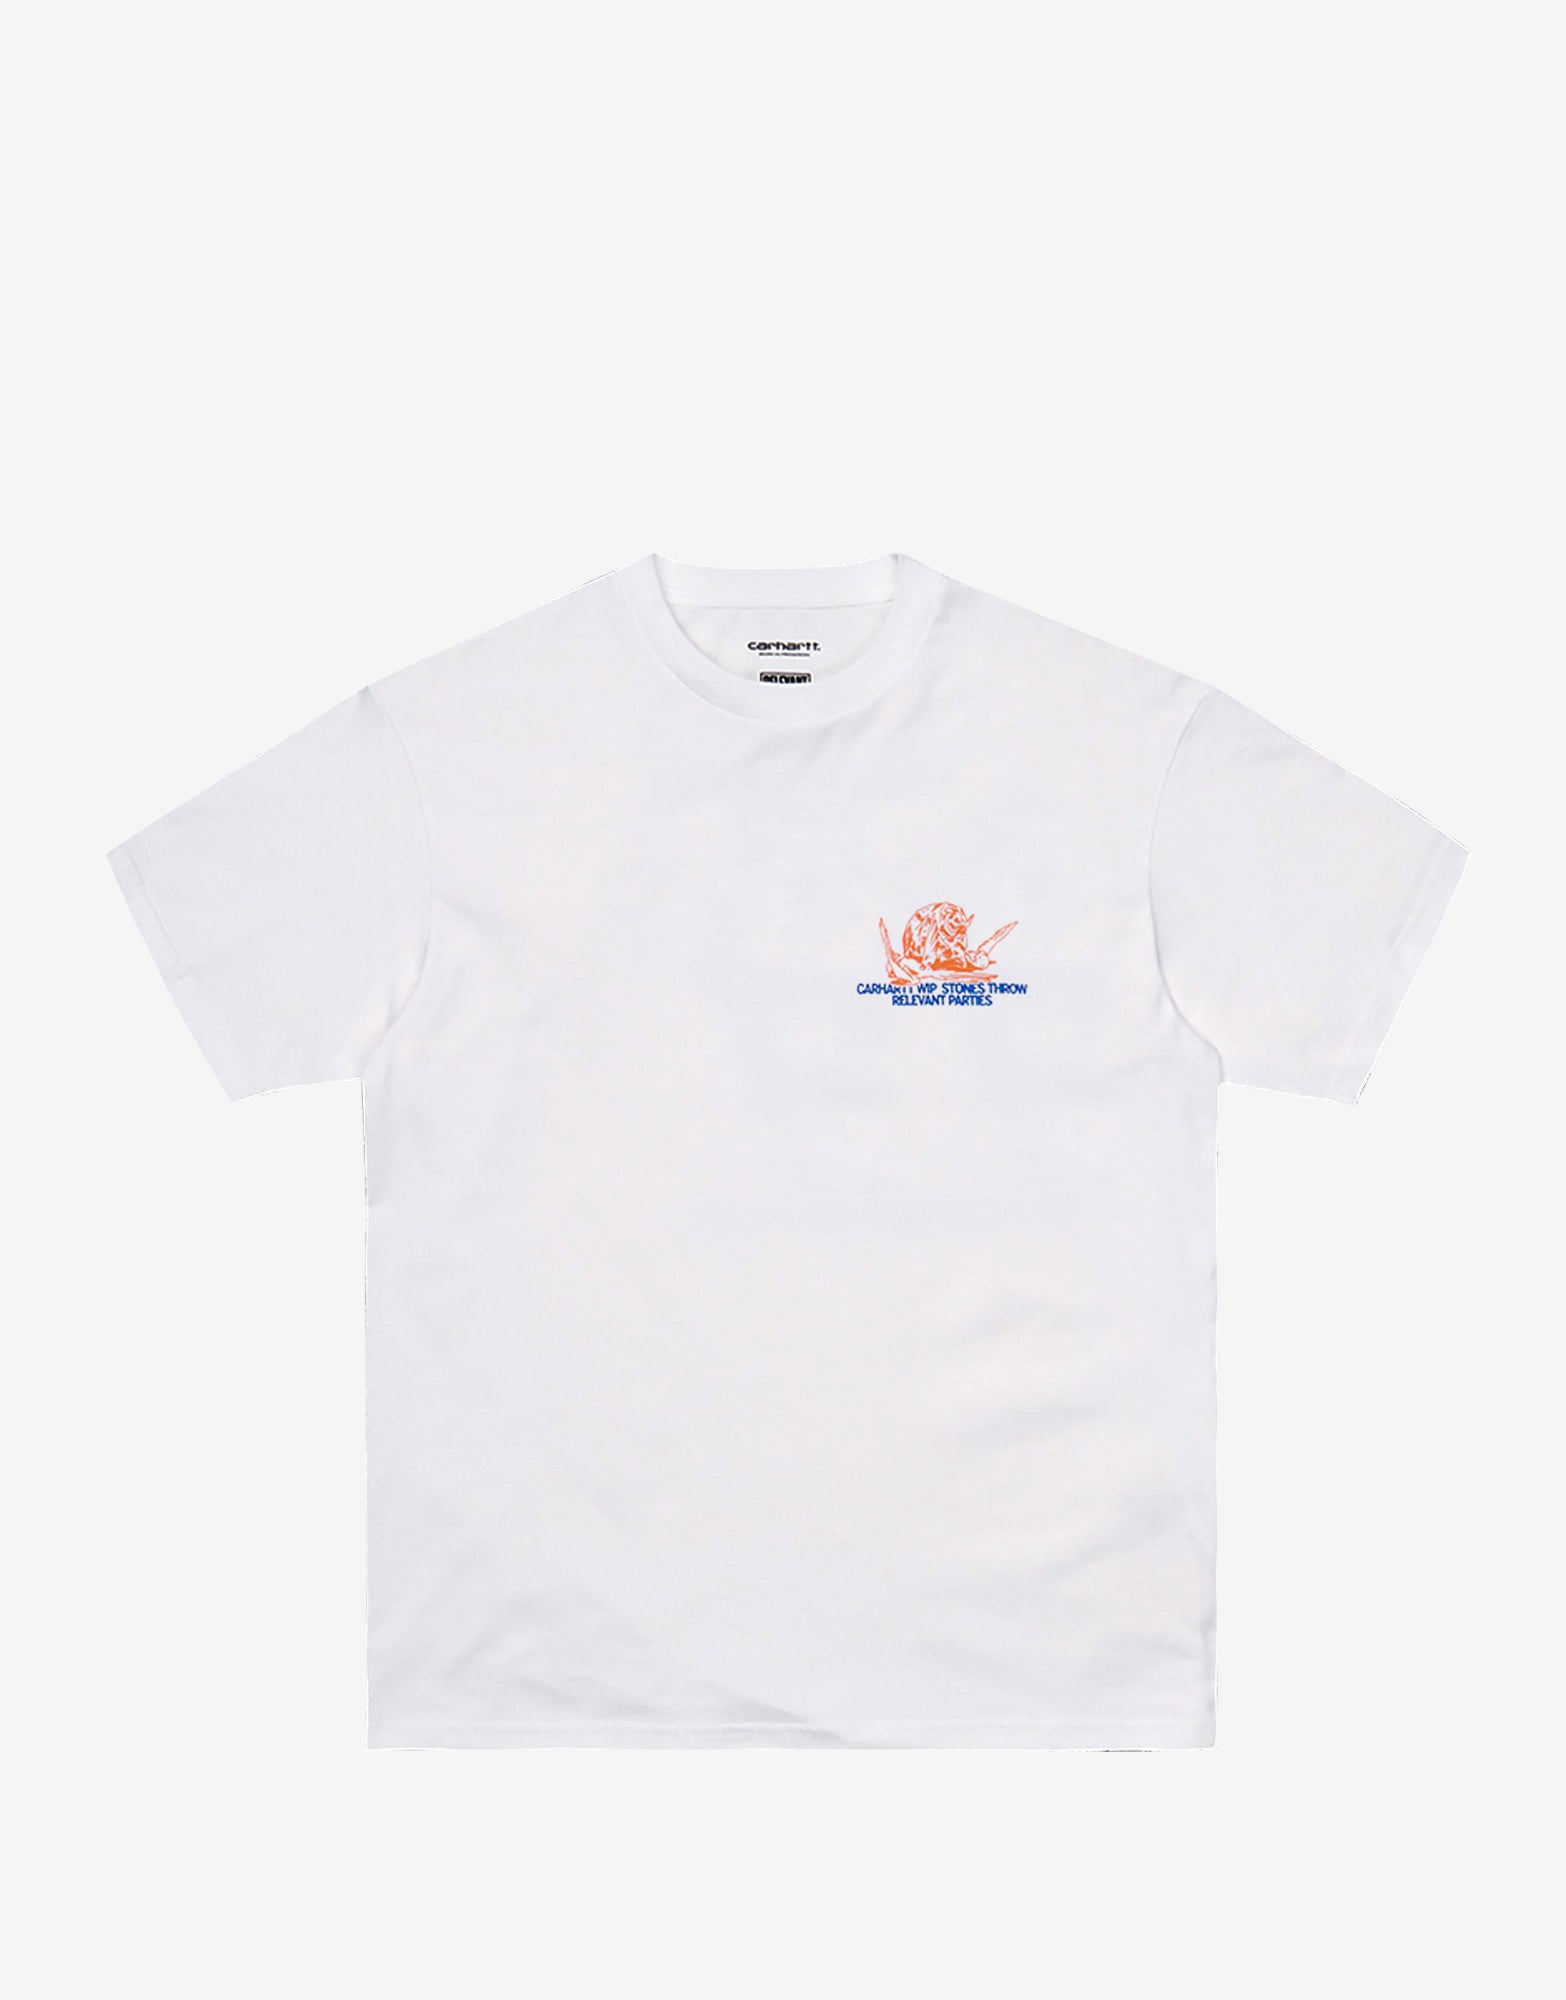 Carhartt WIP x Relevant Parties Stones Throw T Shirt - White